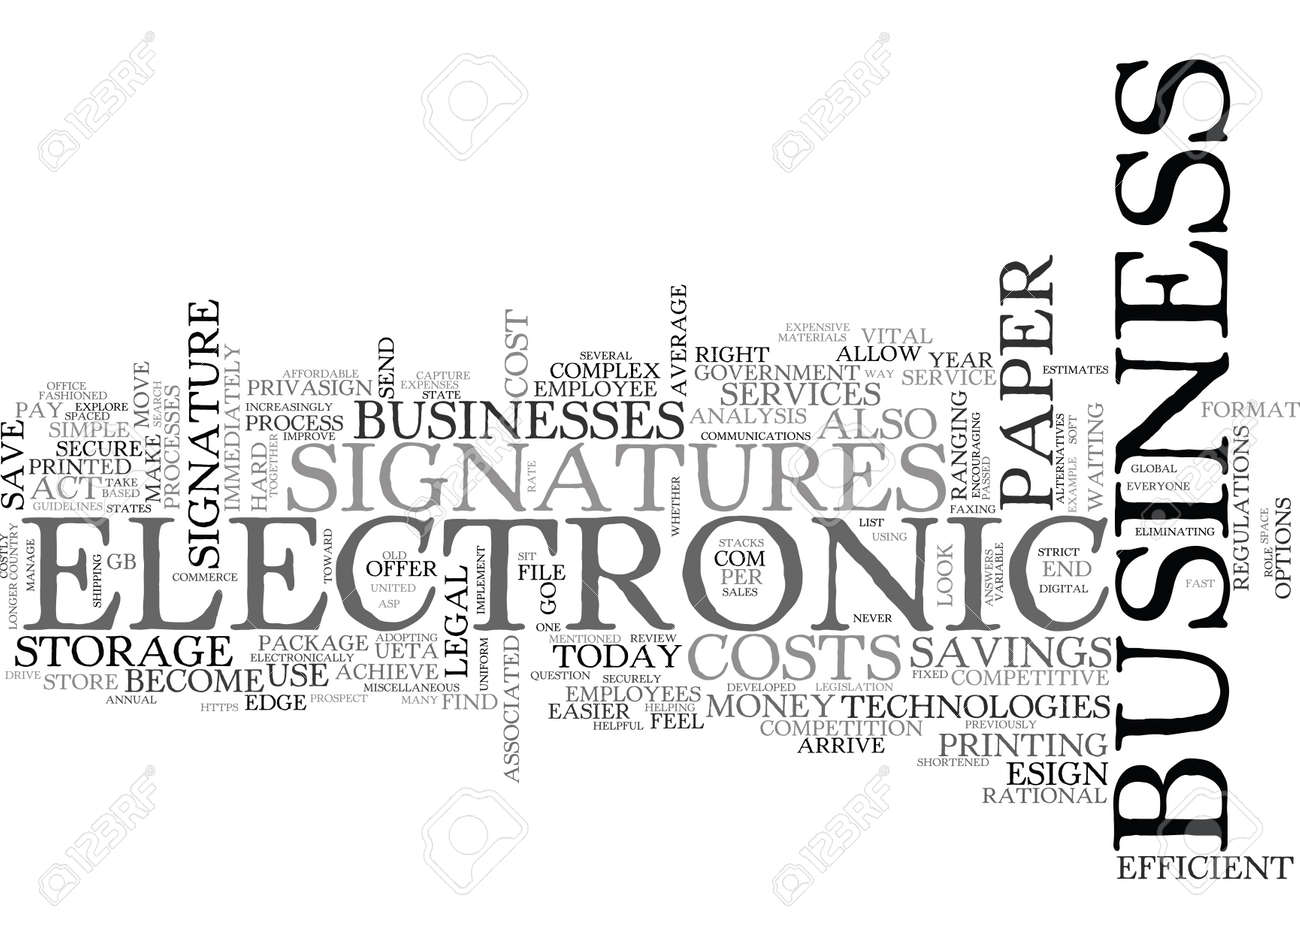 WHY SHOULD I USE ELECTRONIC SIGNATURES TEXT WORD CLOUD CONCEPT - 79580032